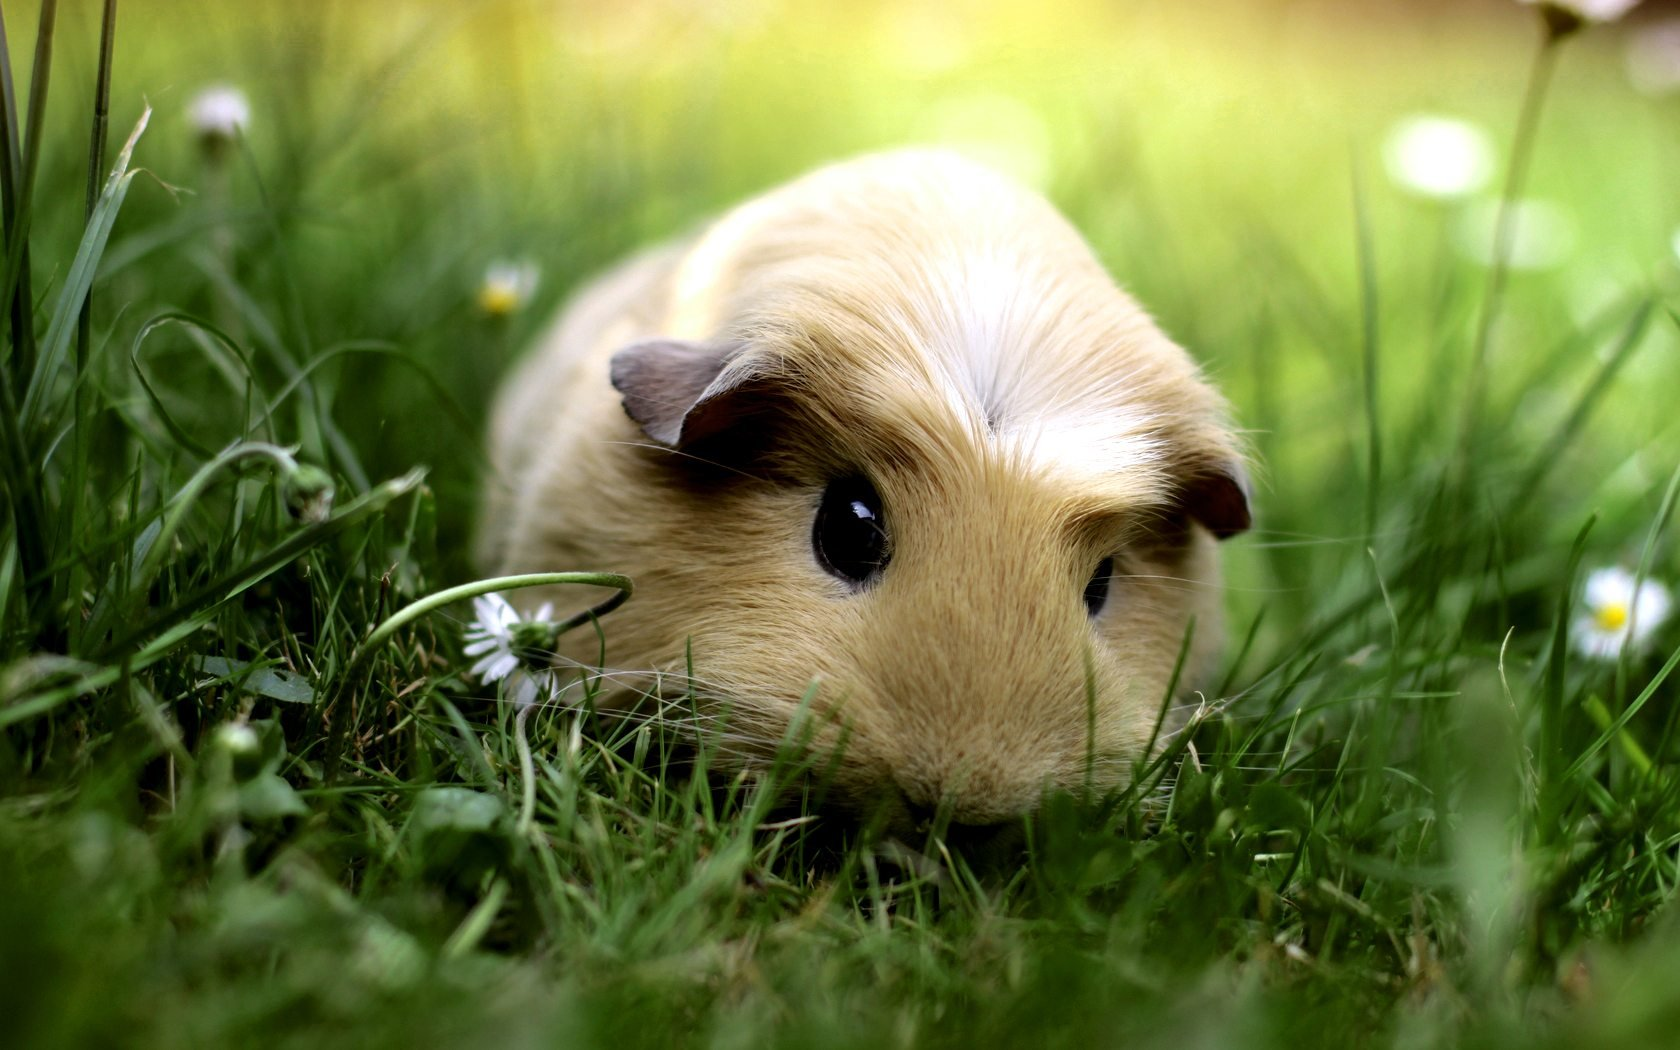 What Breed of Guinea Pig Are You? | Pig wallpaper, Animal and Cavy